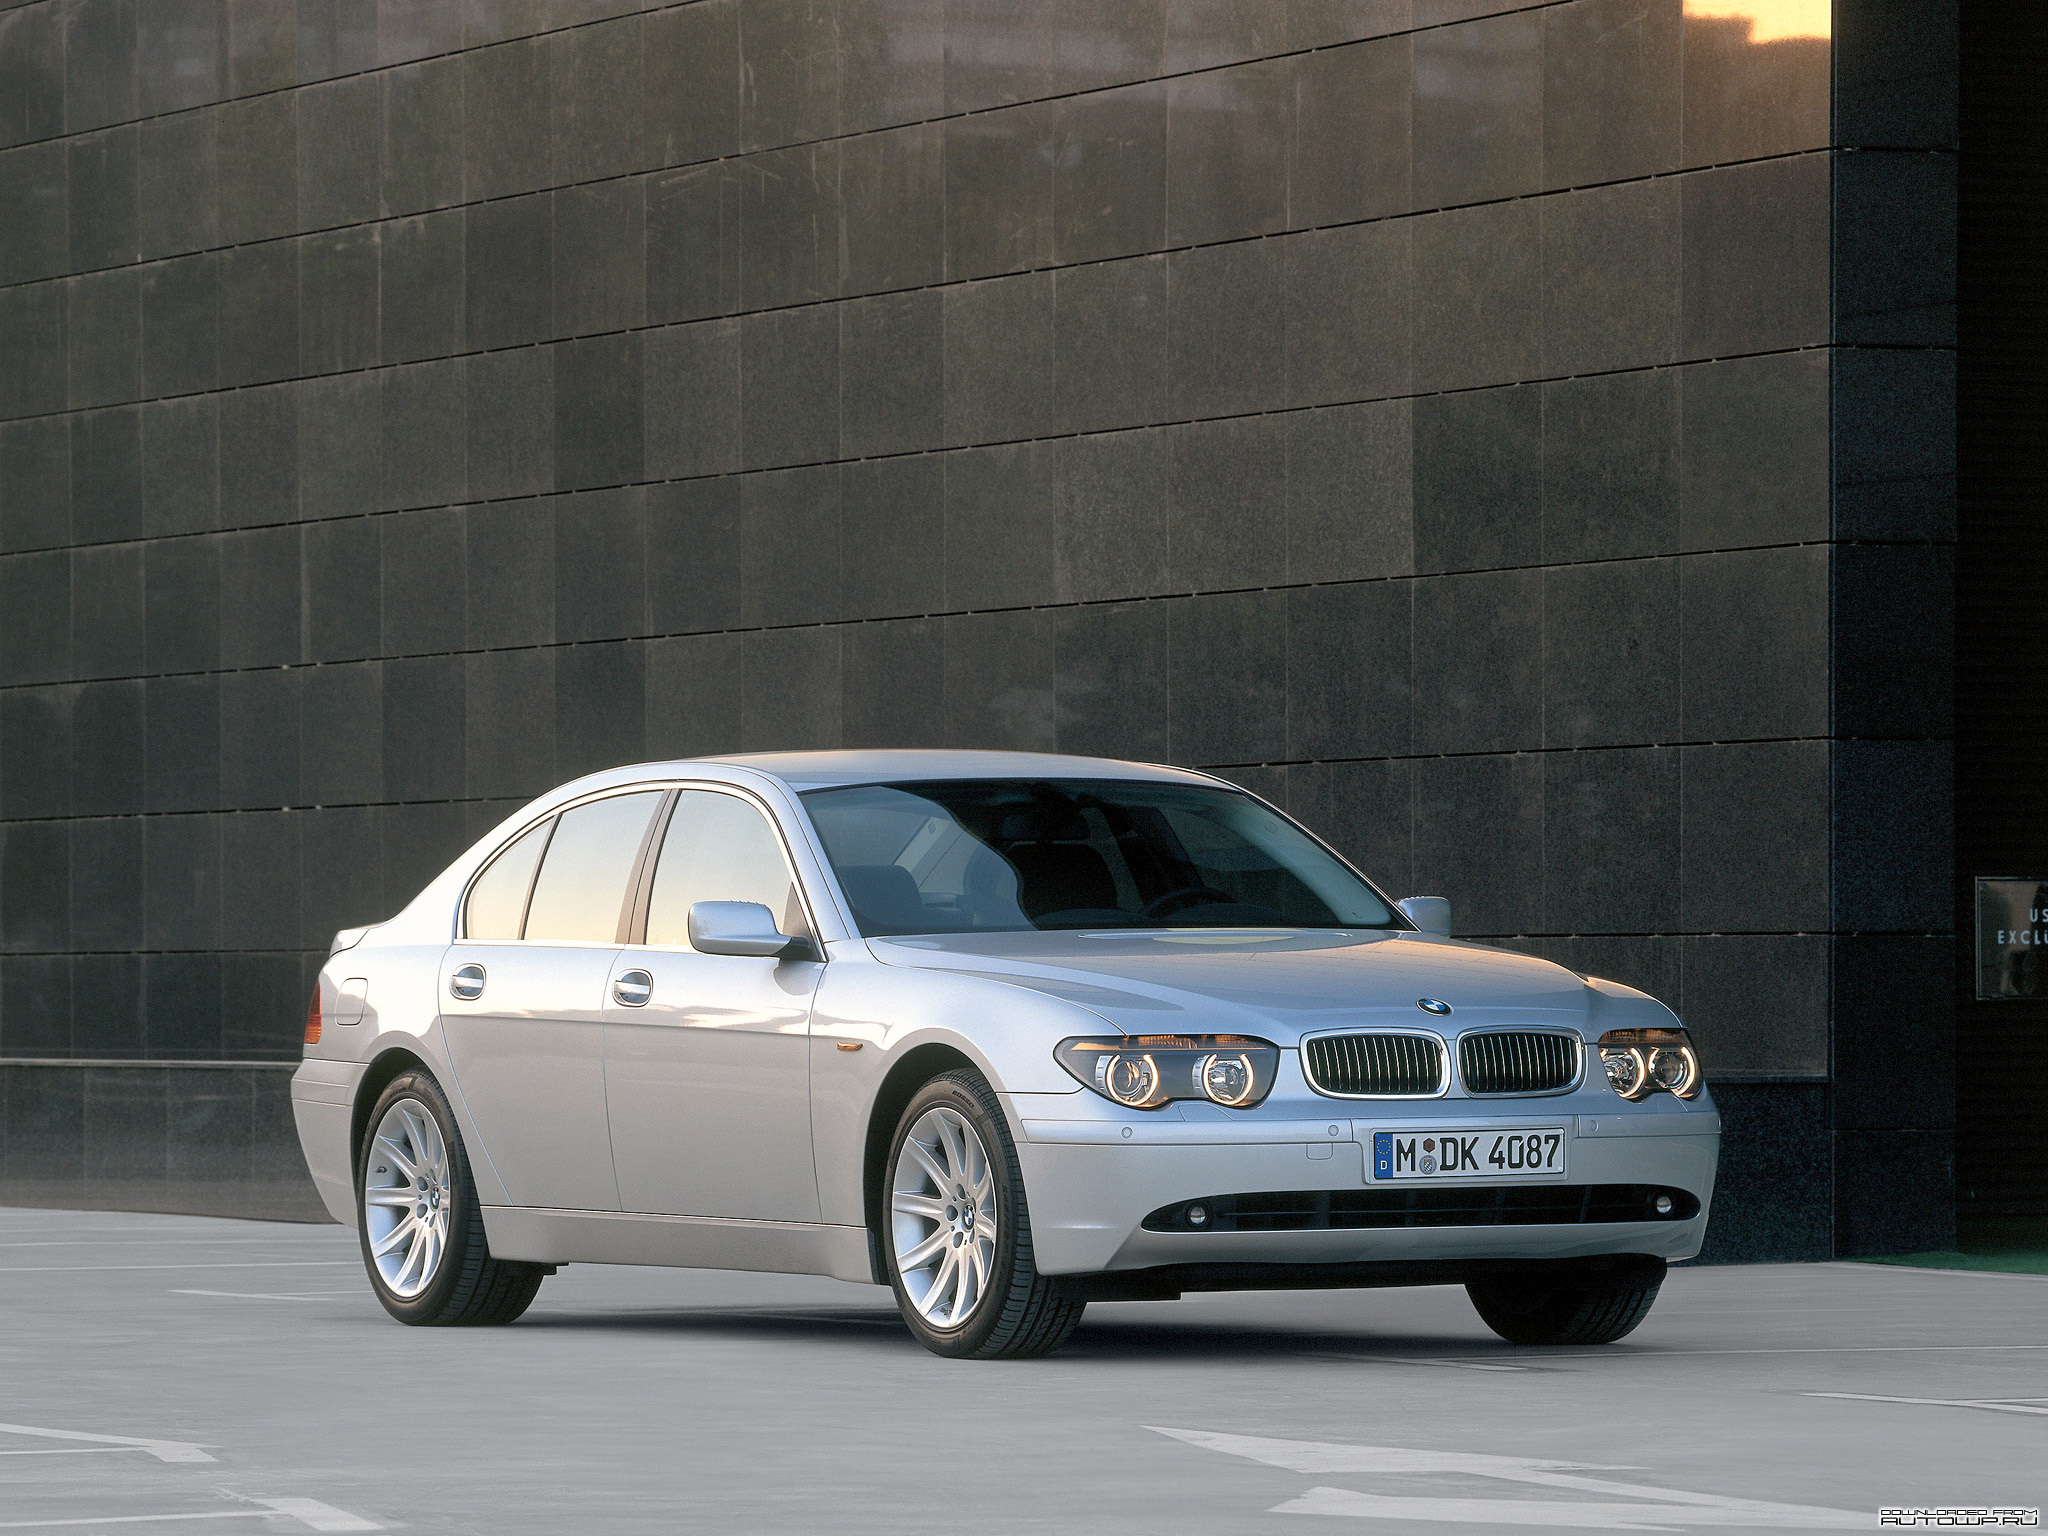 bmw 7 series e65 e66 picture 62594 bmw photo gallery. Black Bedroom Furniture Sets. Home Design Ideas